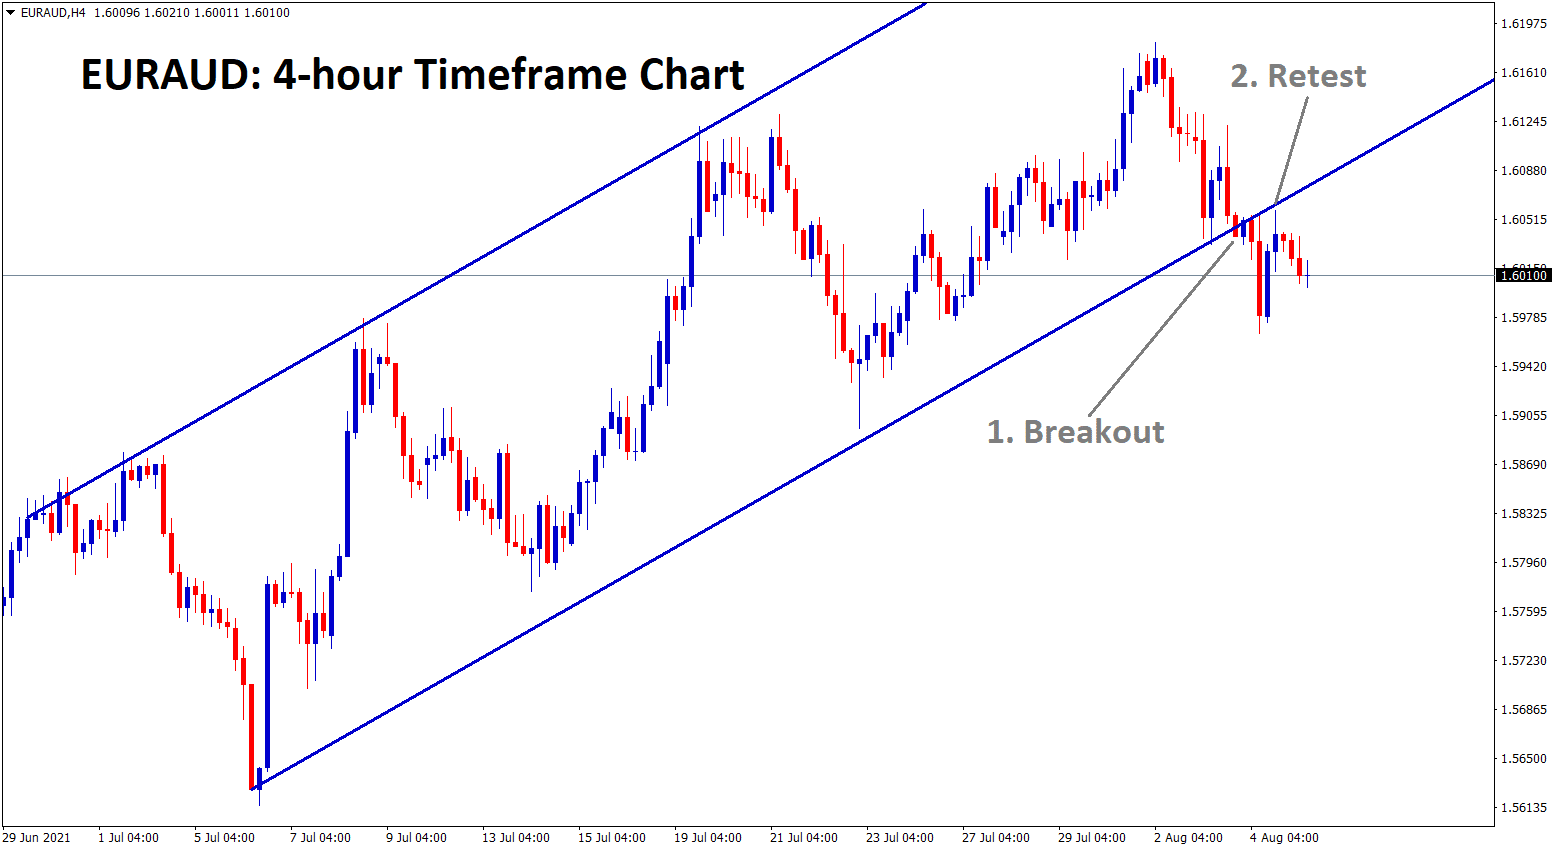 EURAUD has broken the Ascending channel retested the broken level and starts to fall now